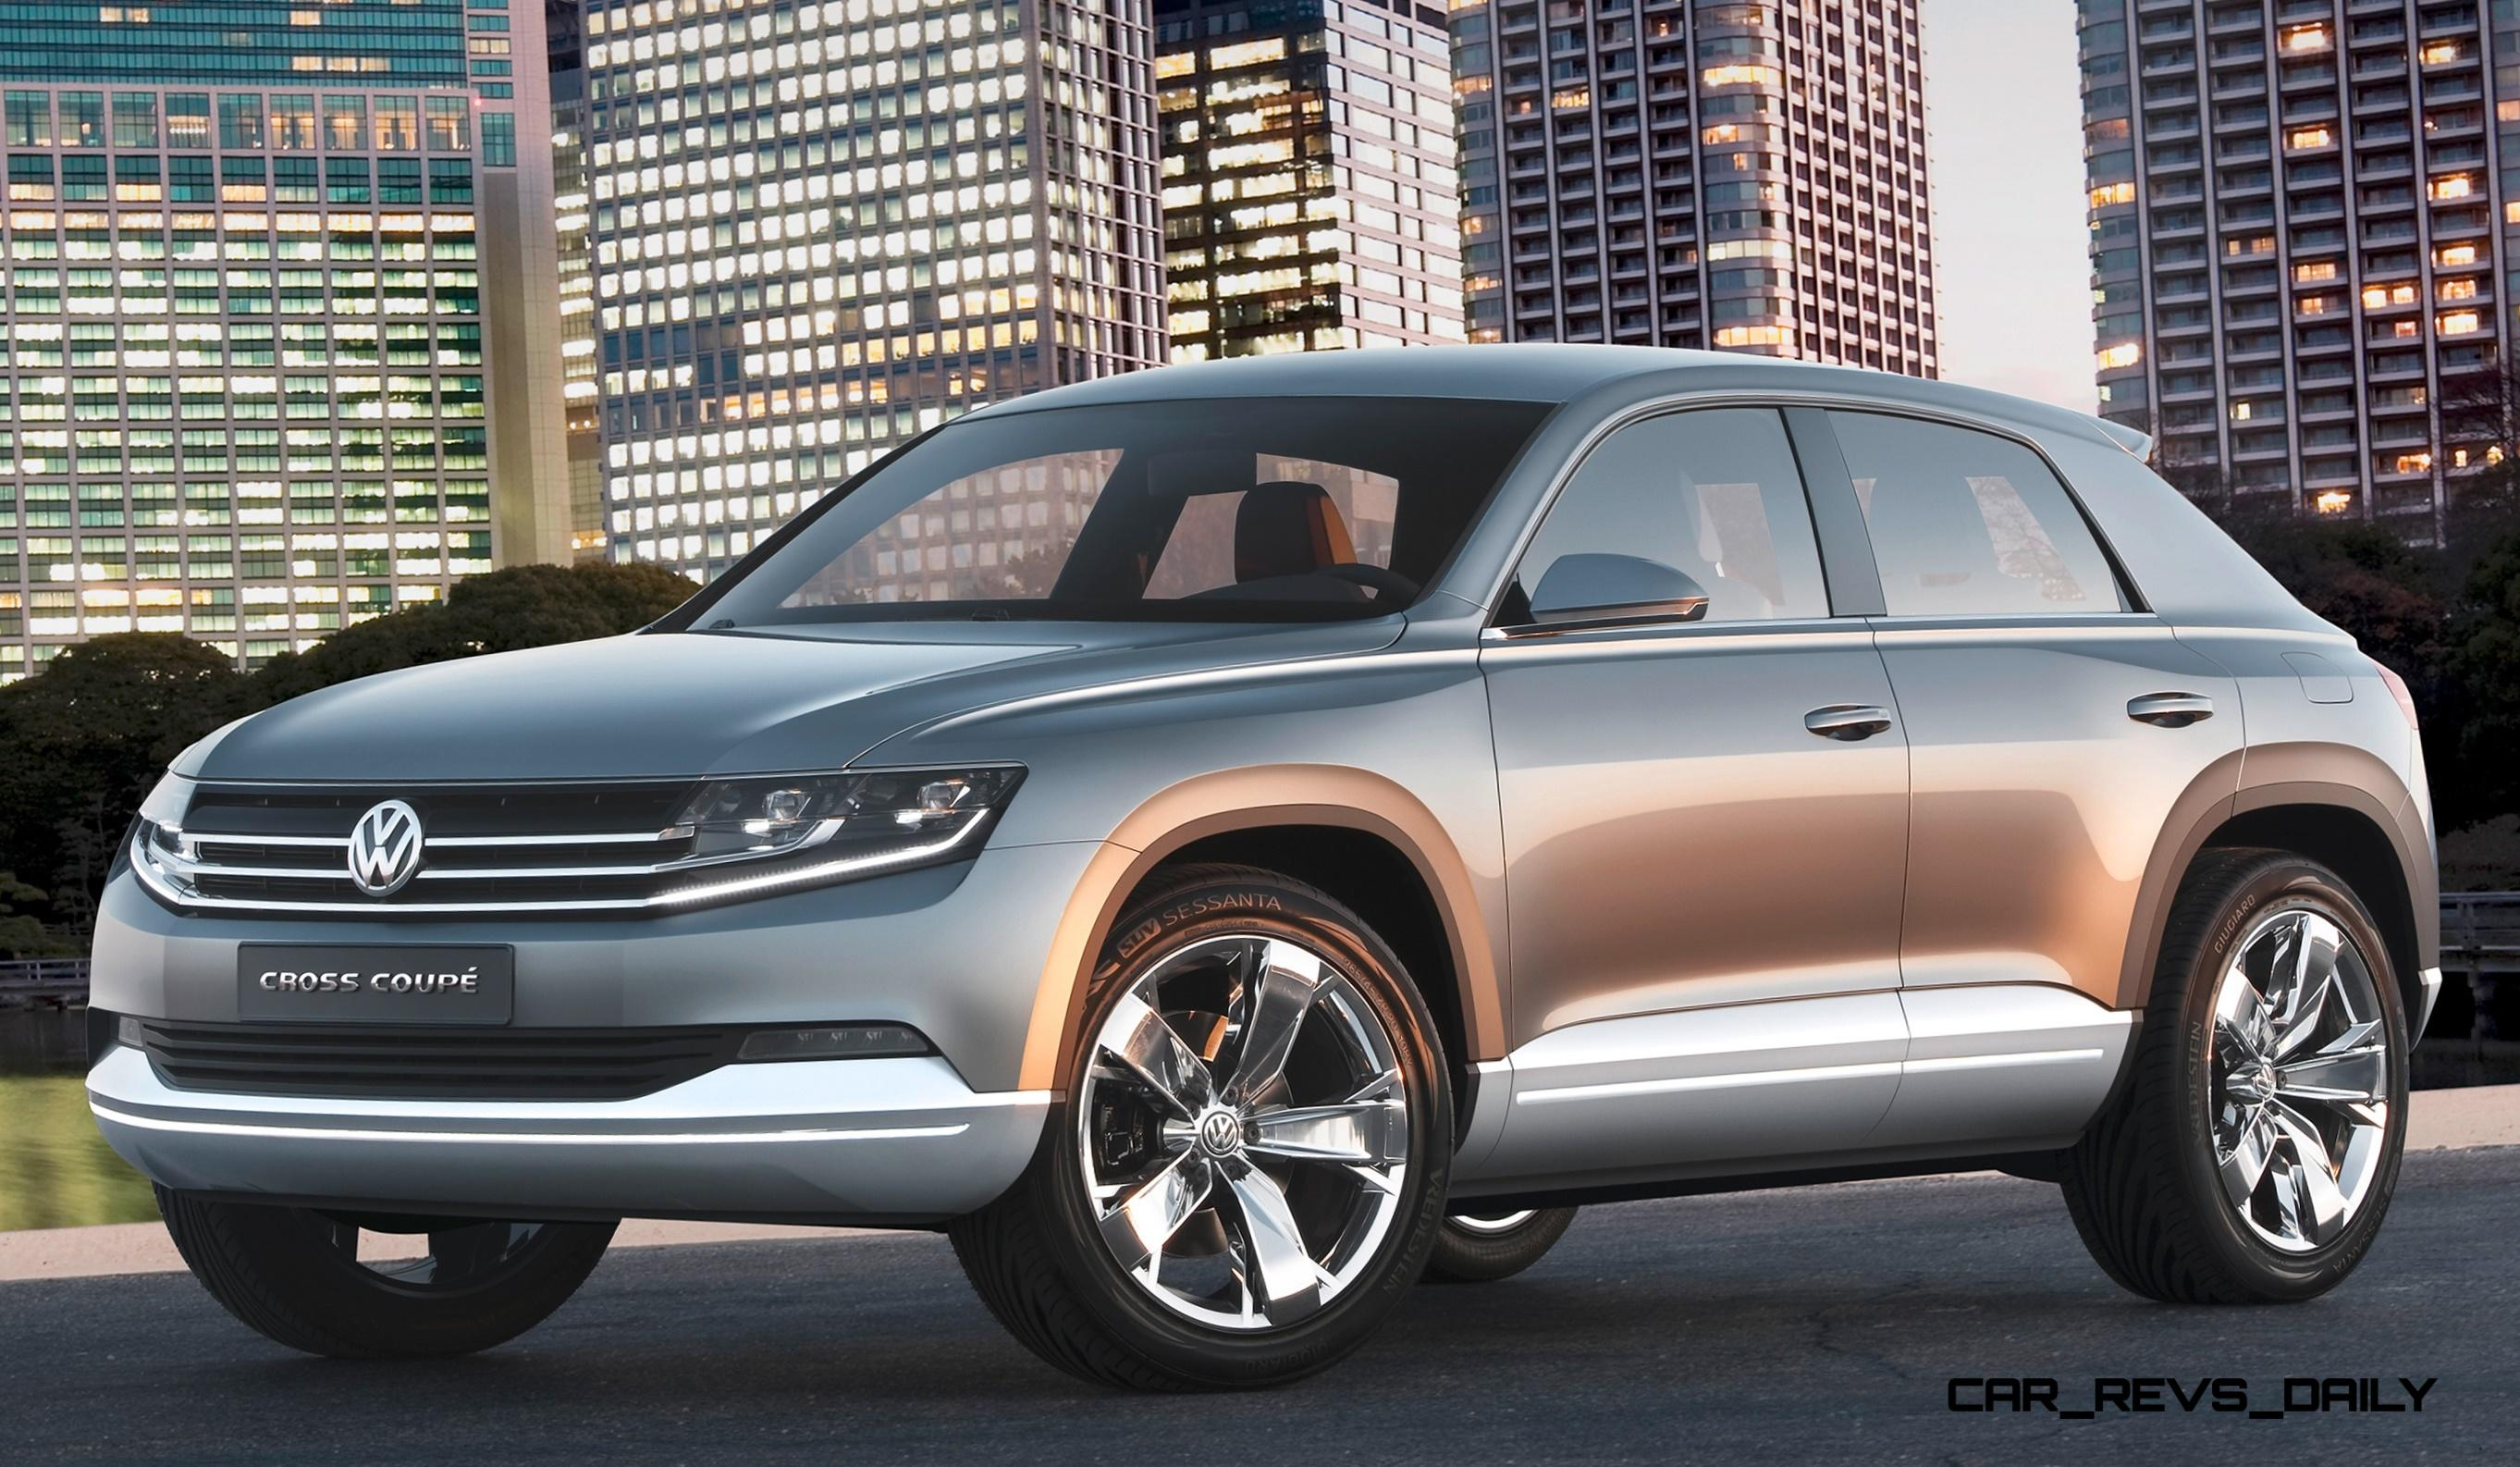 2011 volkswagen cross coupe suv concept is future mqb sized bmw x4 competitor. Black Bedroom Furniture Sets. Home Design Ideas